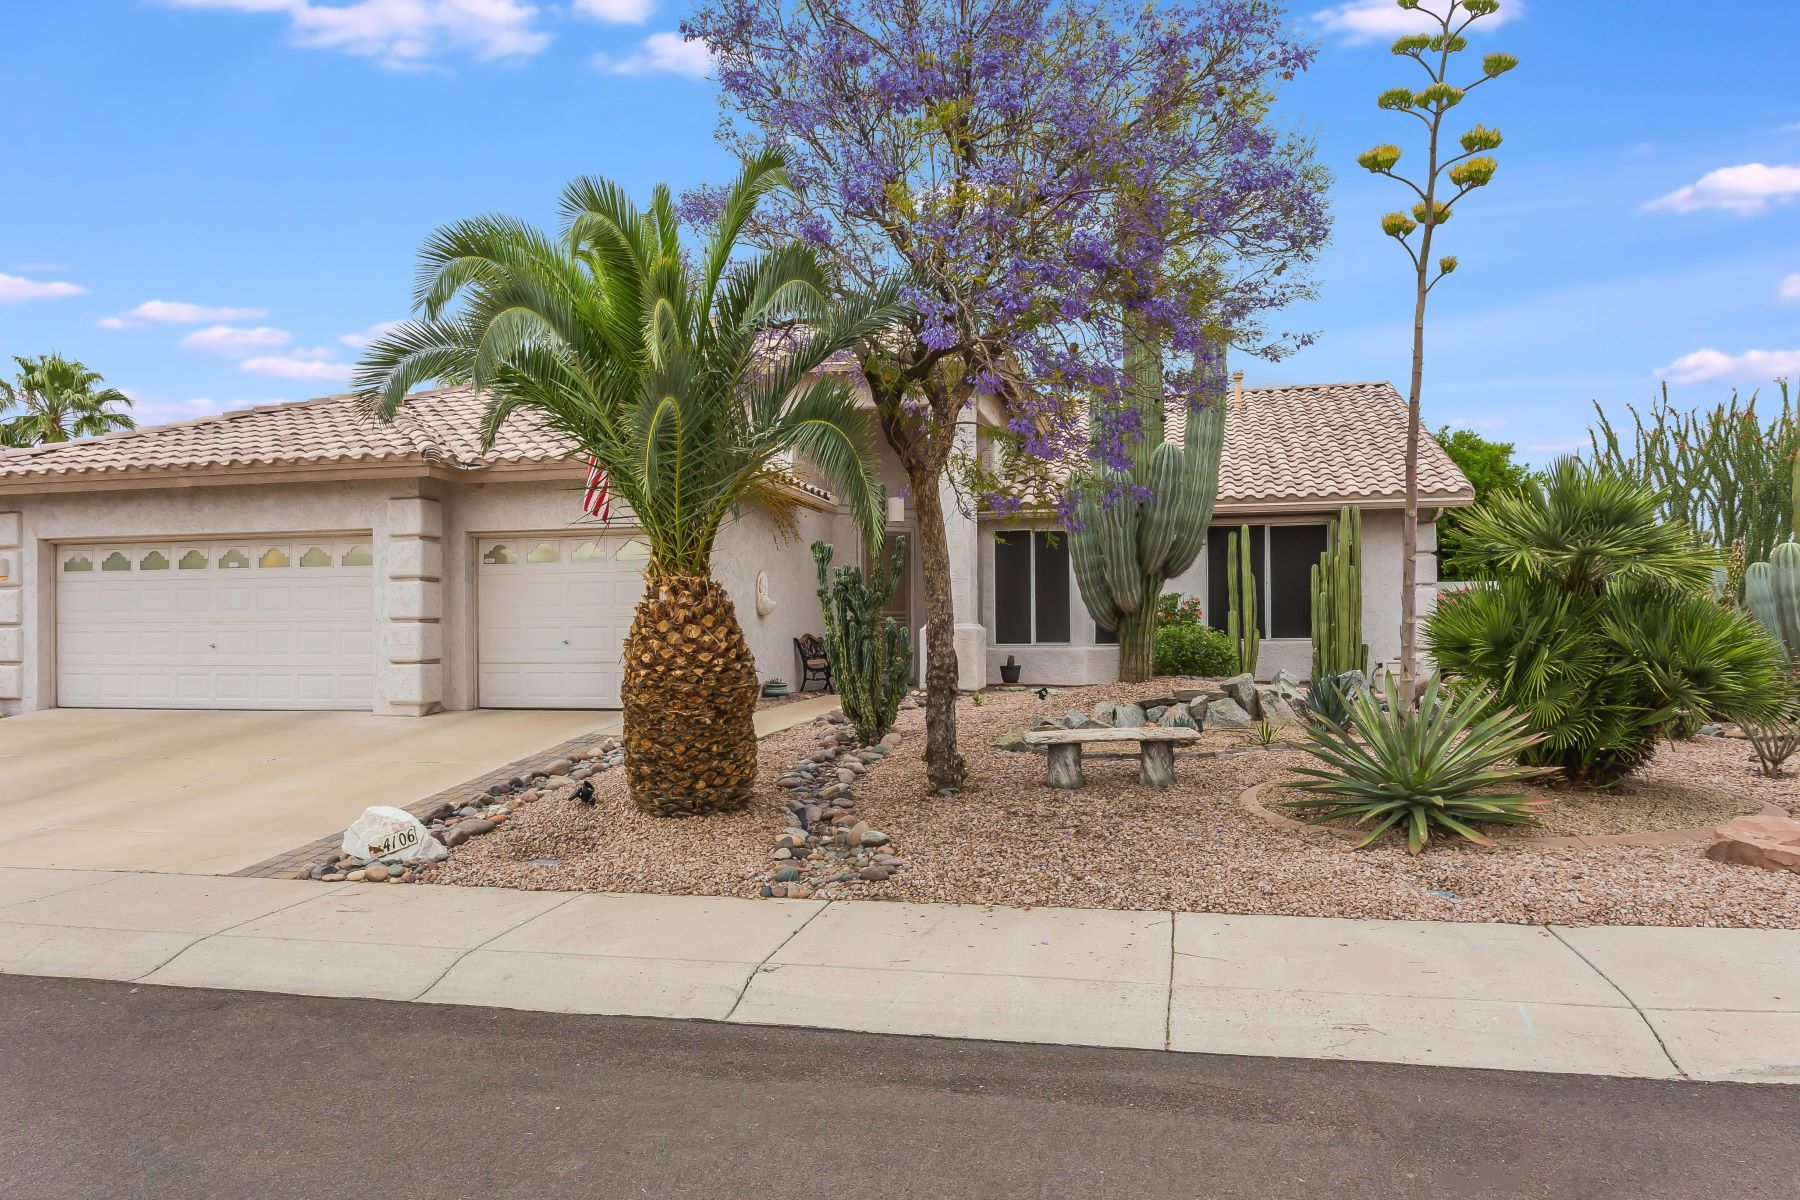 single family homes for Active at Arroyo Springs 4106 W IRMA LN Glendale, Arizona 85308 United States